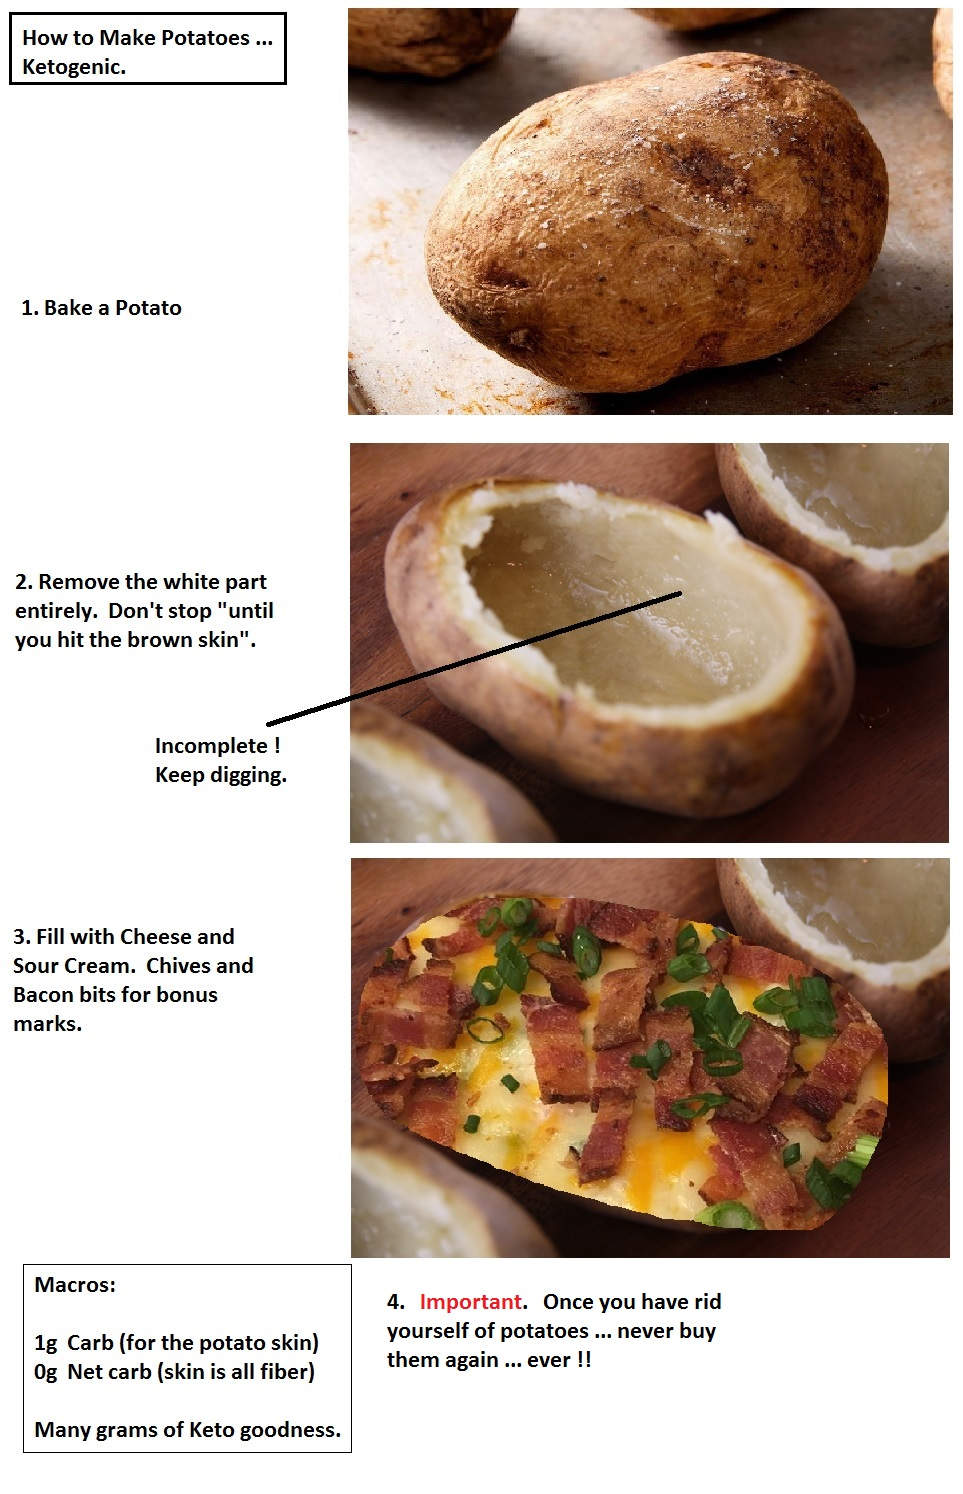 are baked potatoes ok for keto diet